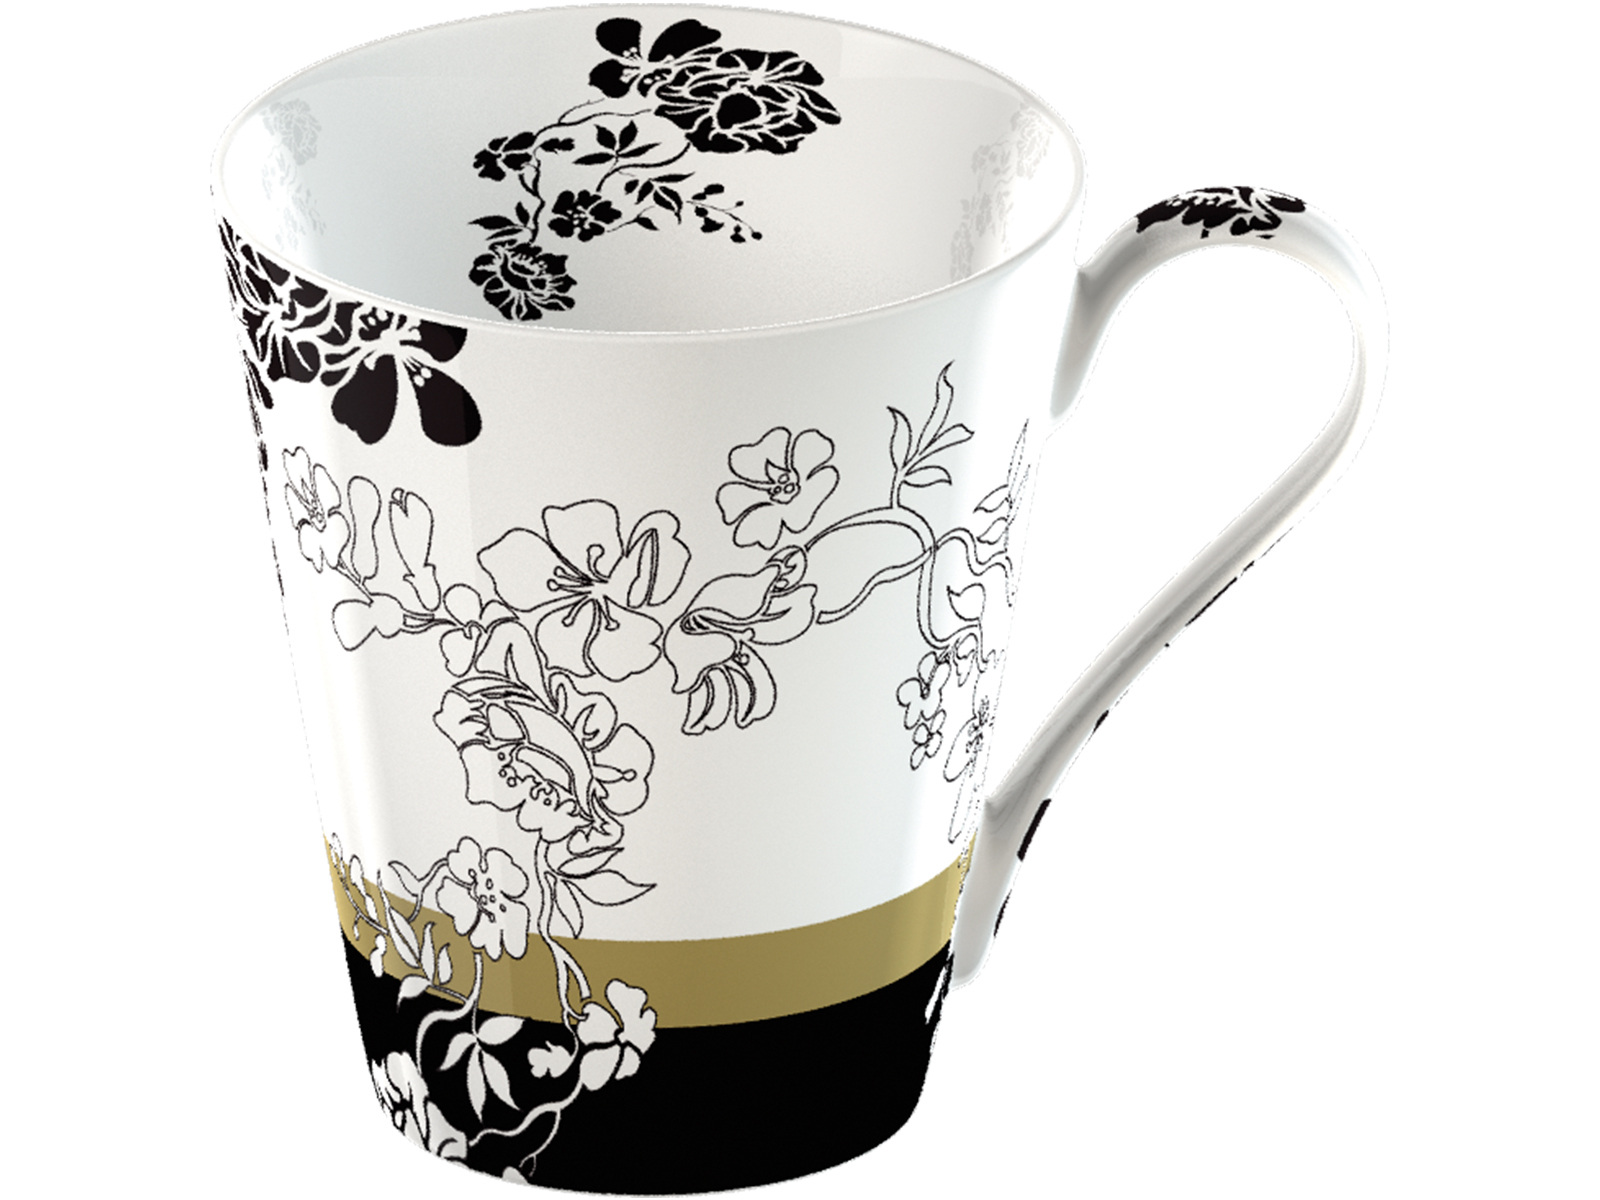 Victoria and Albert Brocade Mug In A Giftbox